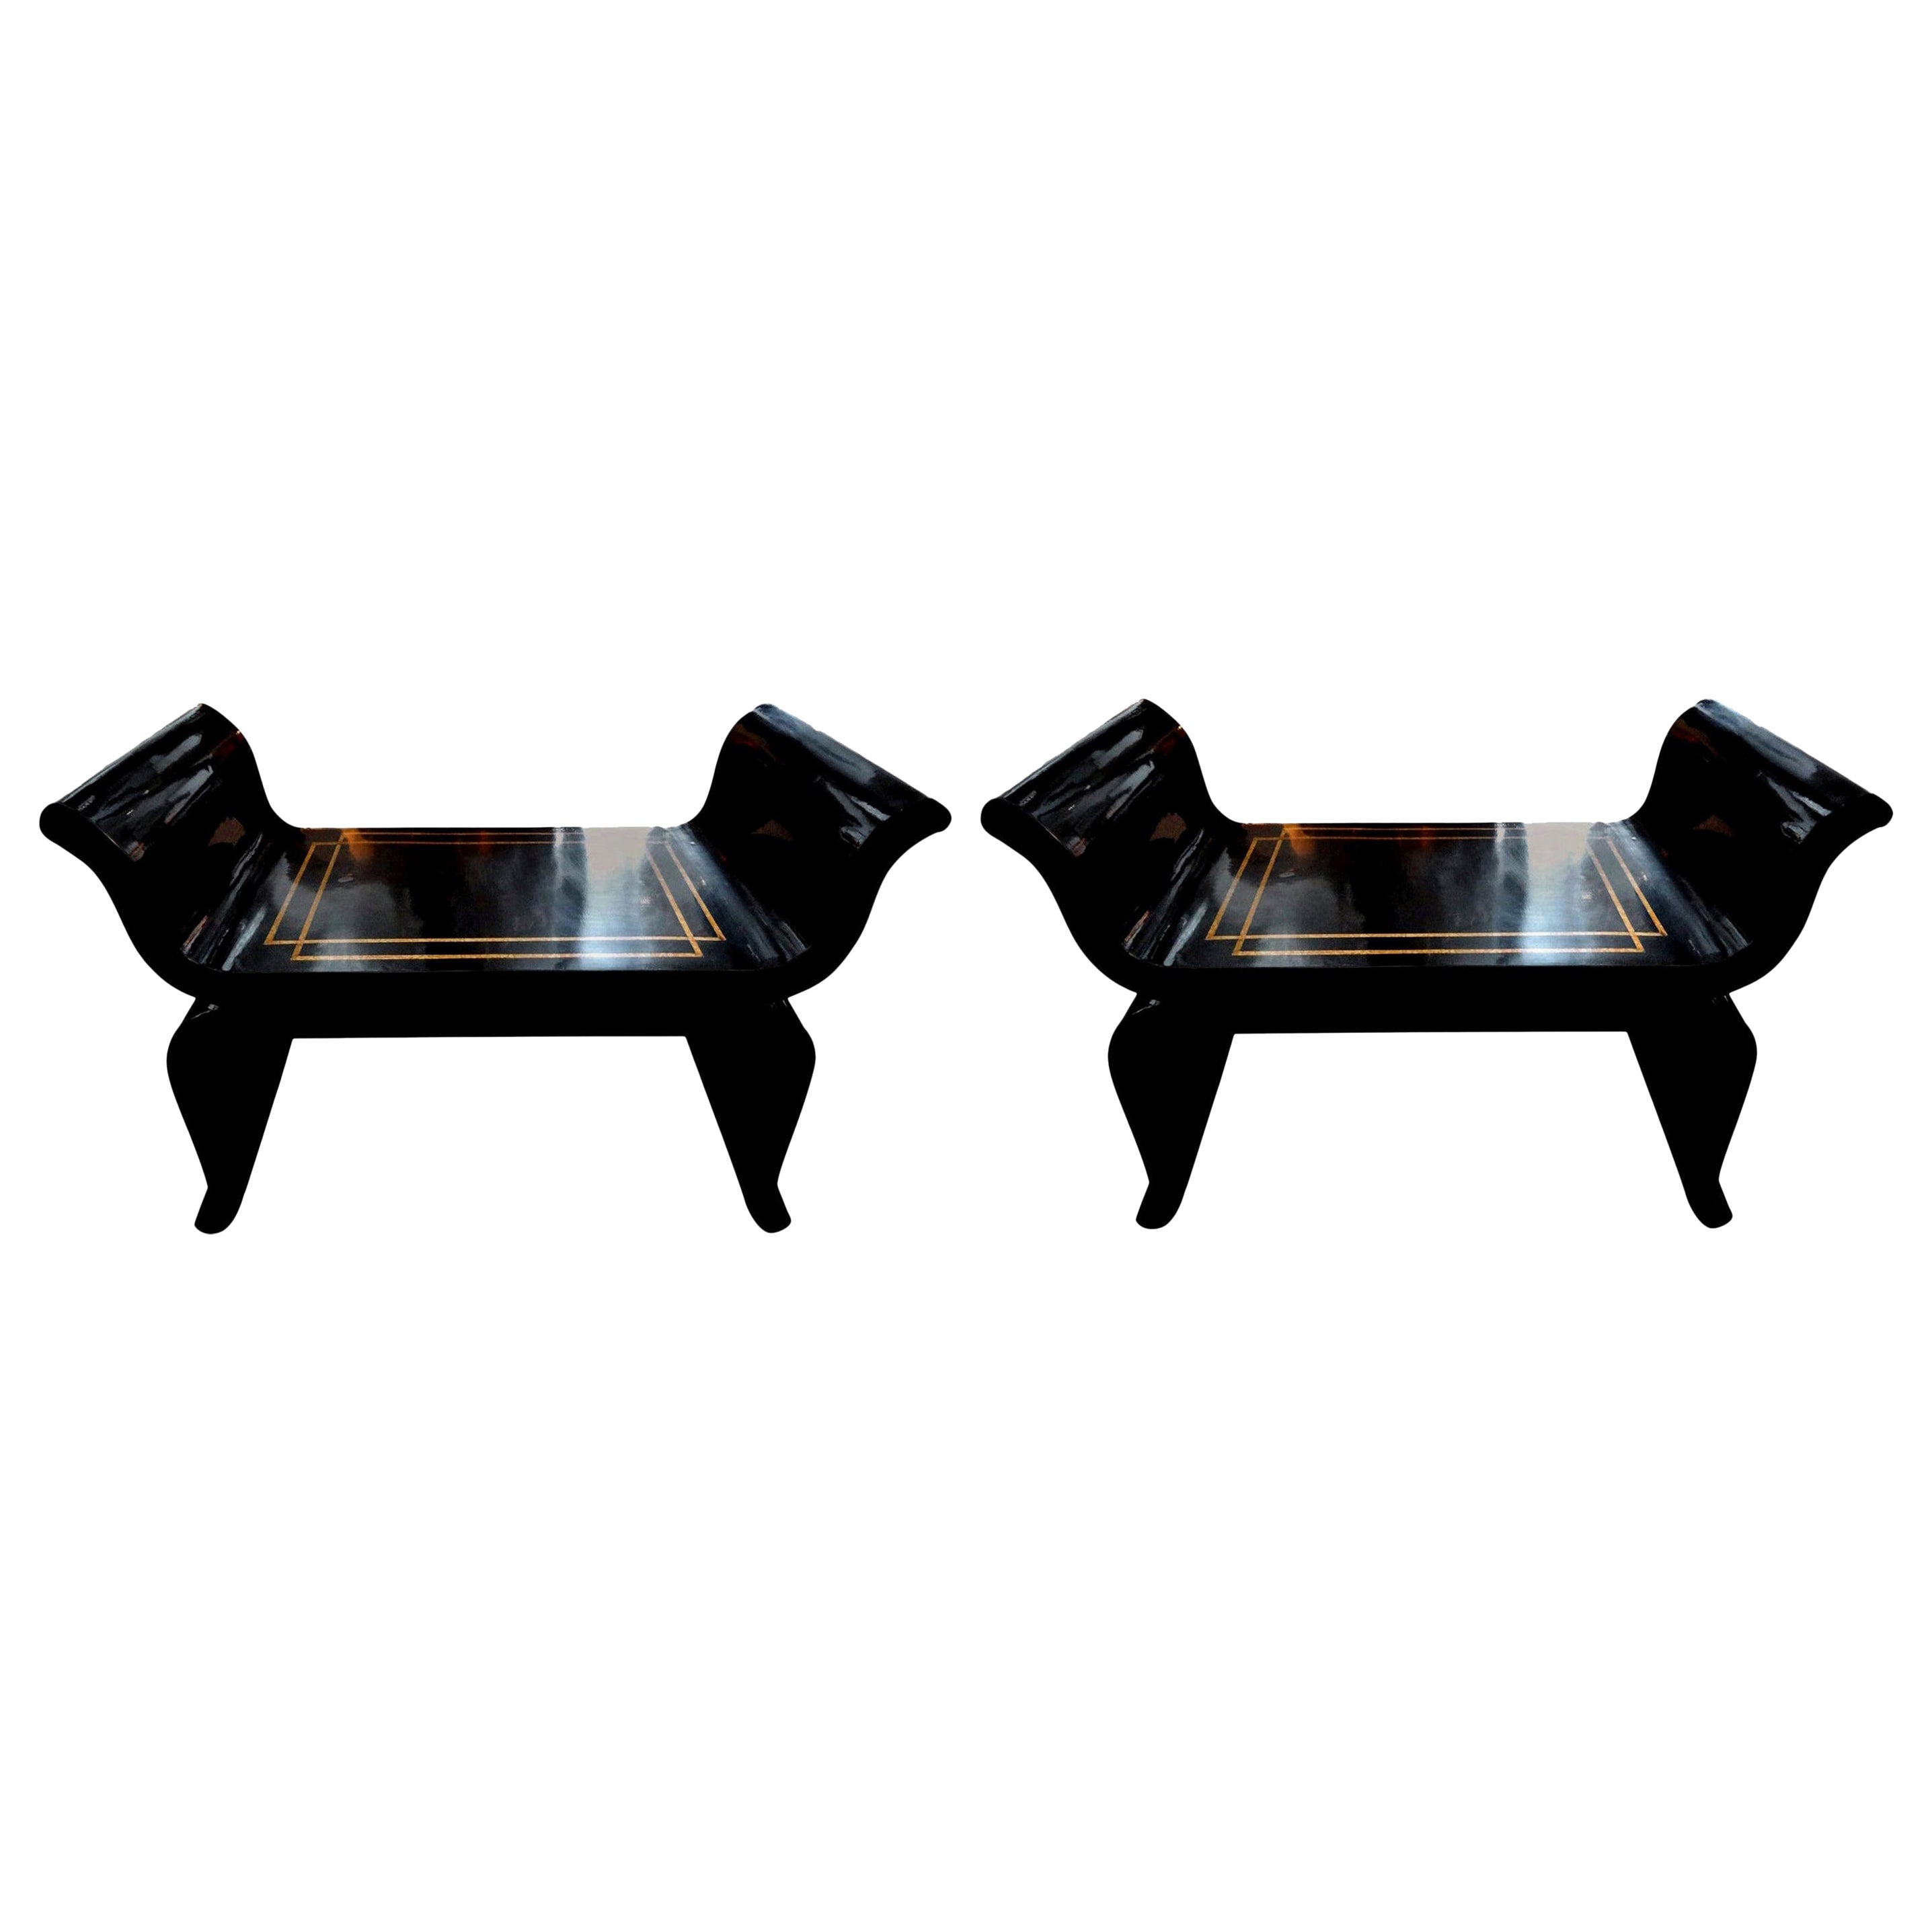 Silver Leaf Bench, In The Manner Of James Mont At 1stDibs